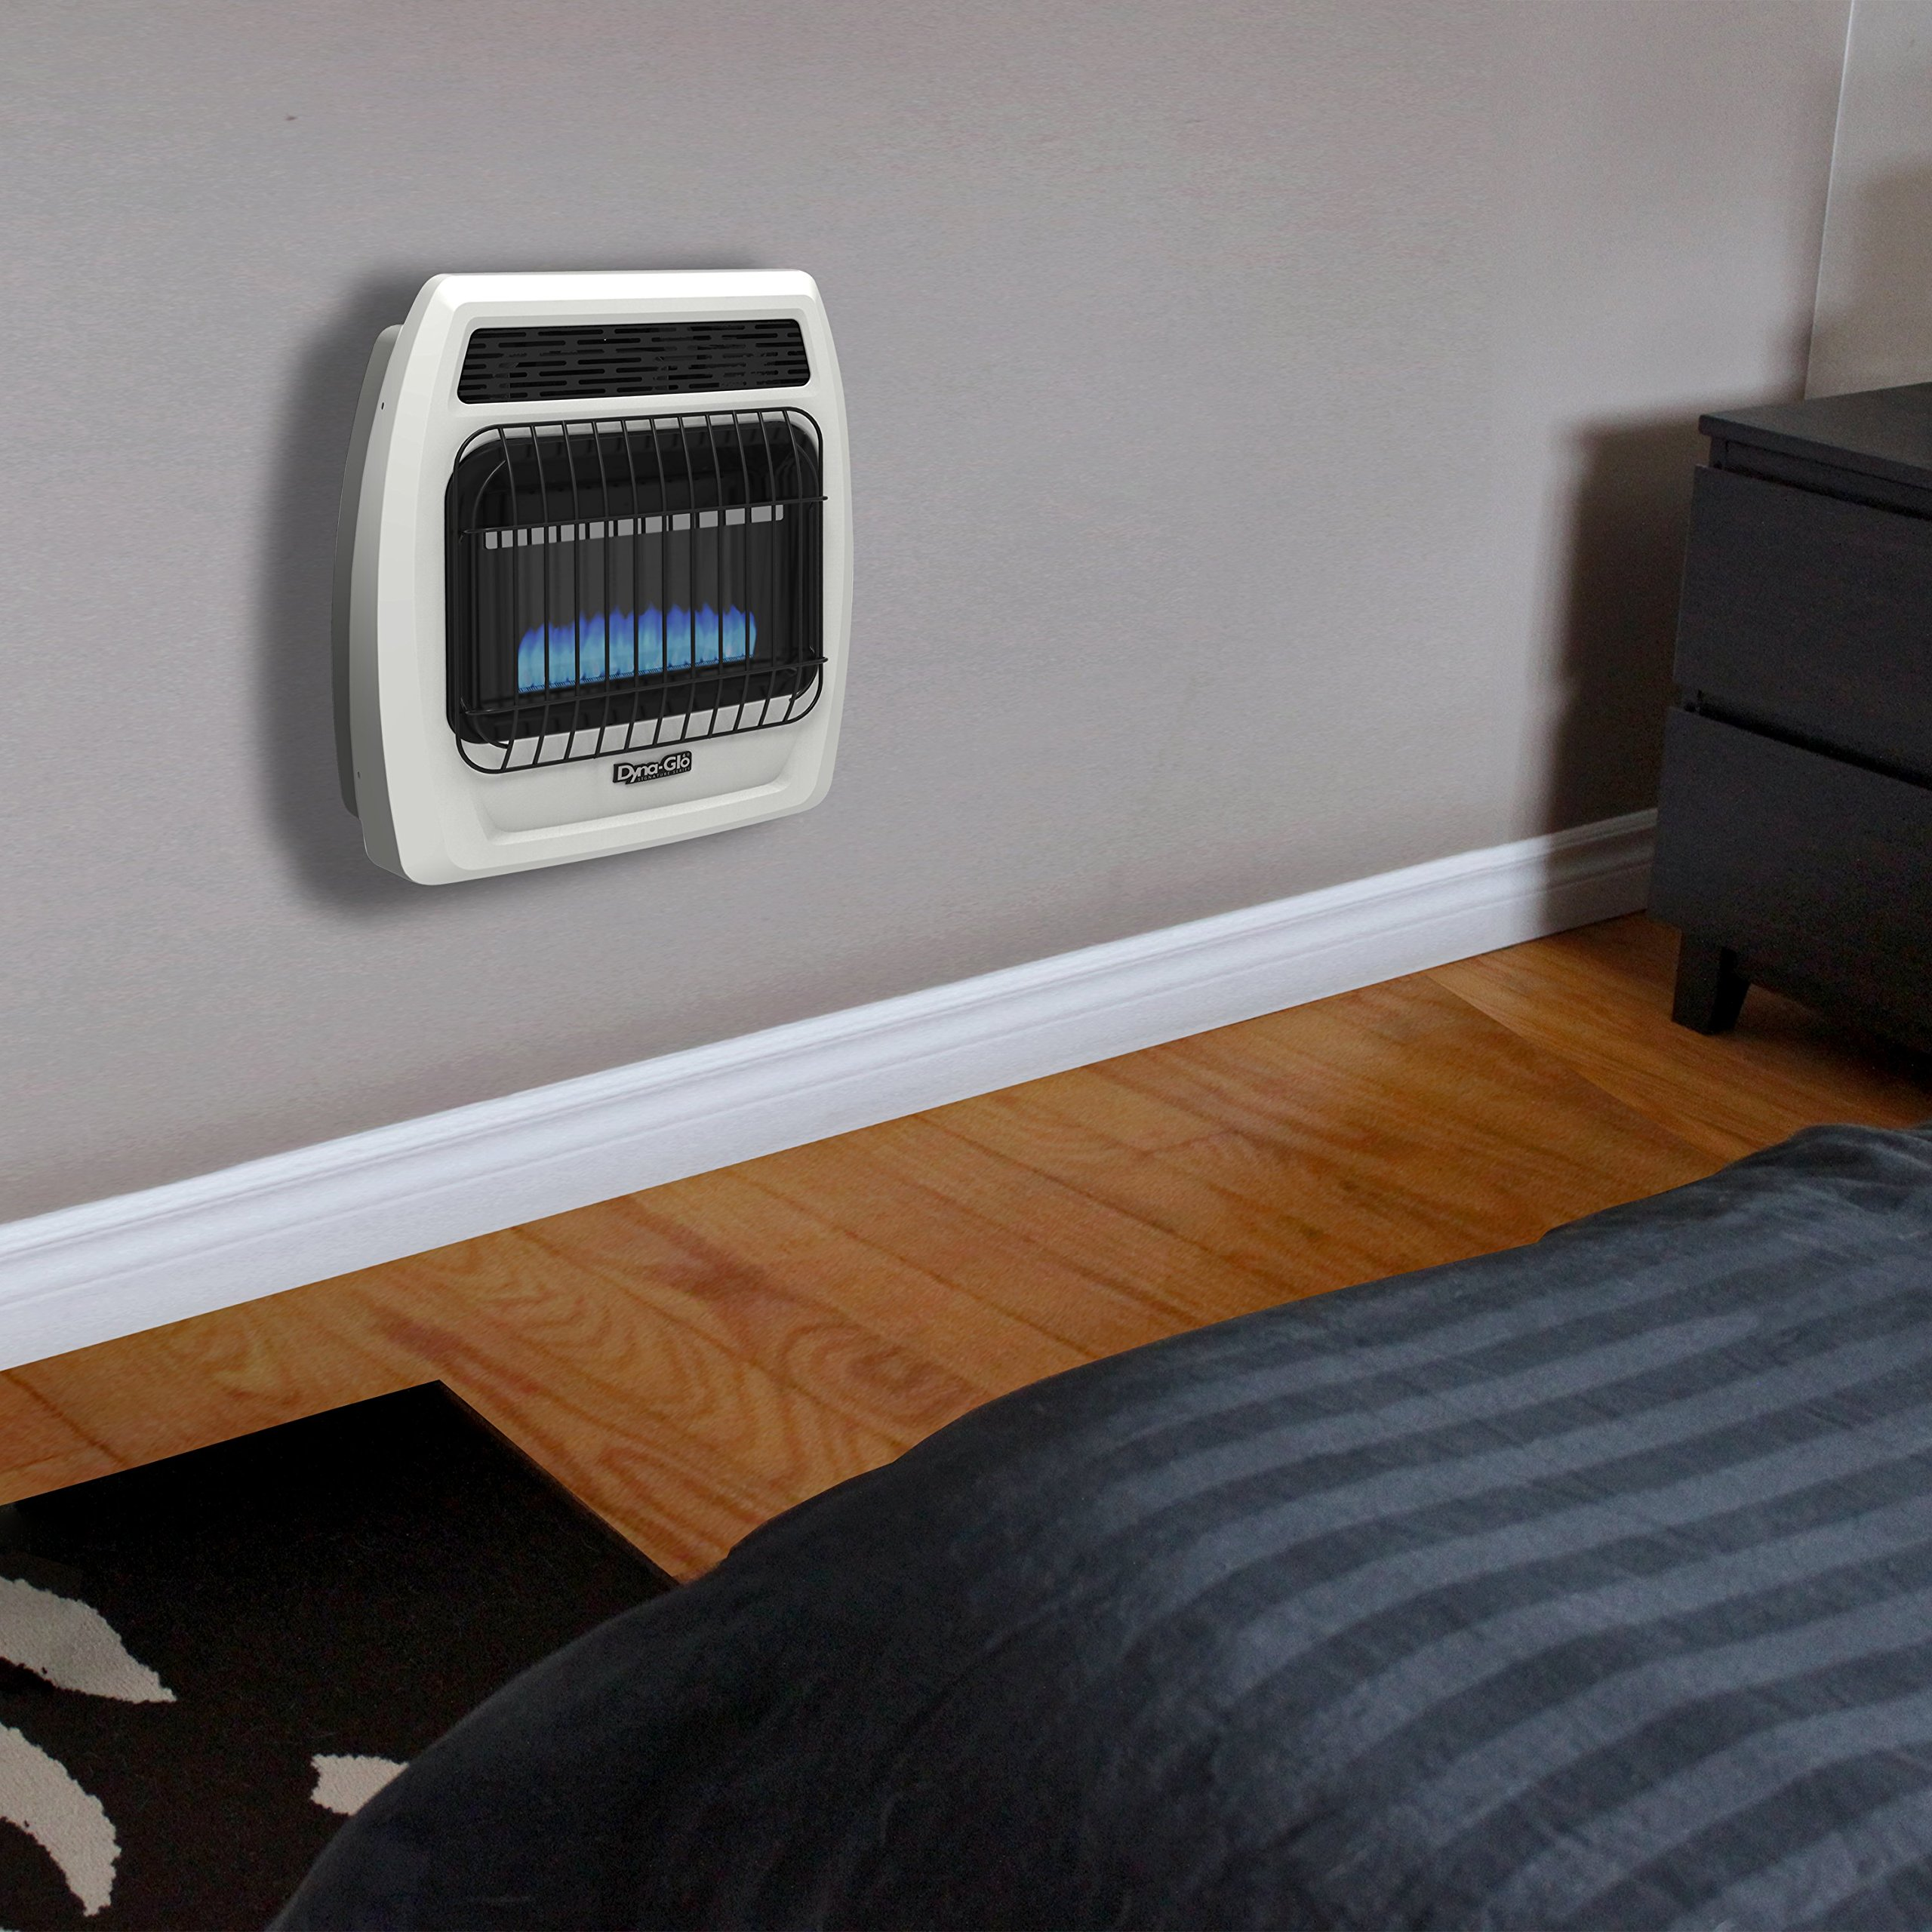 Dyna Glo BFSS10LPT-2P 10,000 Btu Liquid Propane Blue Flame Vent Free Thermostatic Wall Heater 10K LP T-Stat by Dyna-Glo (Image #2)